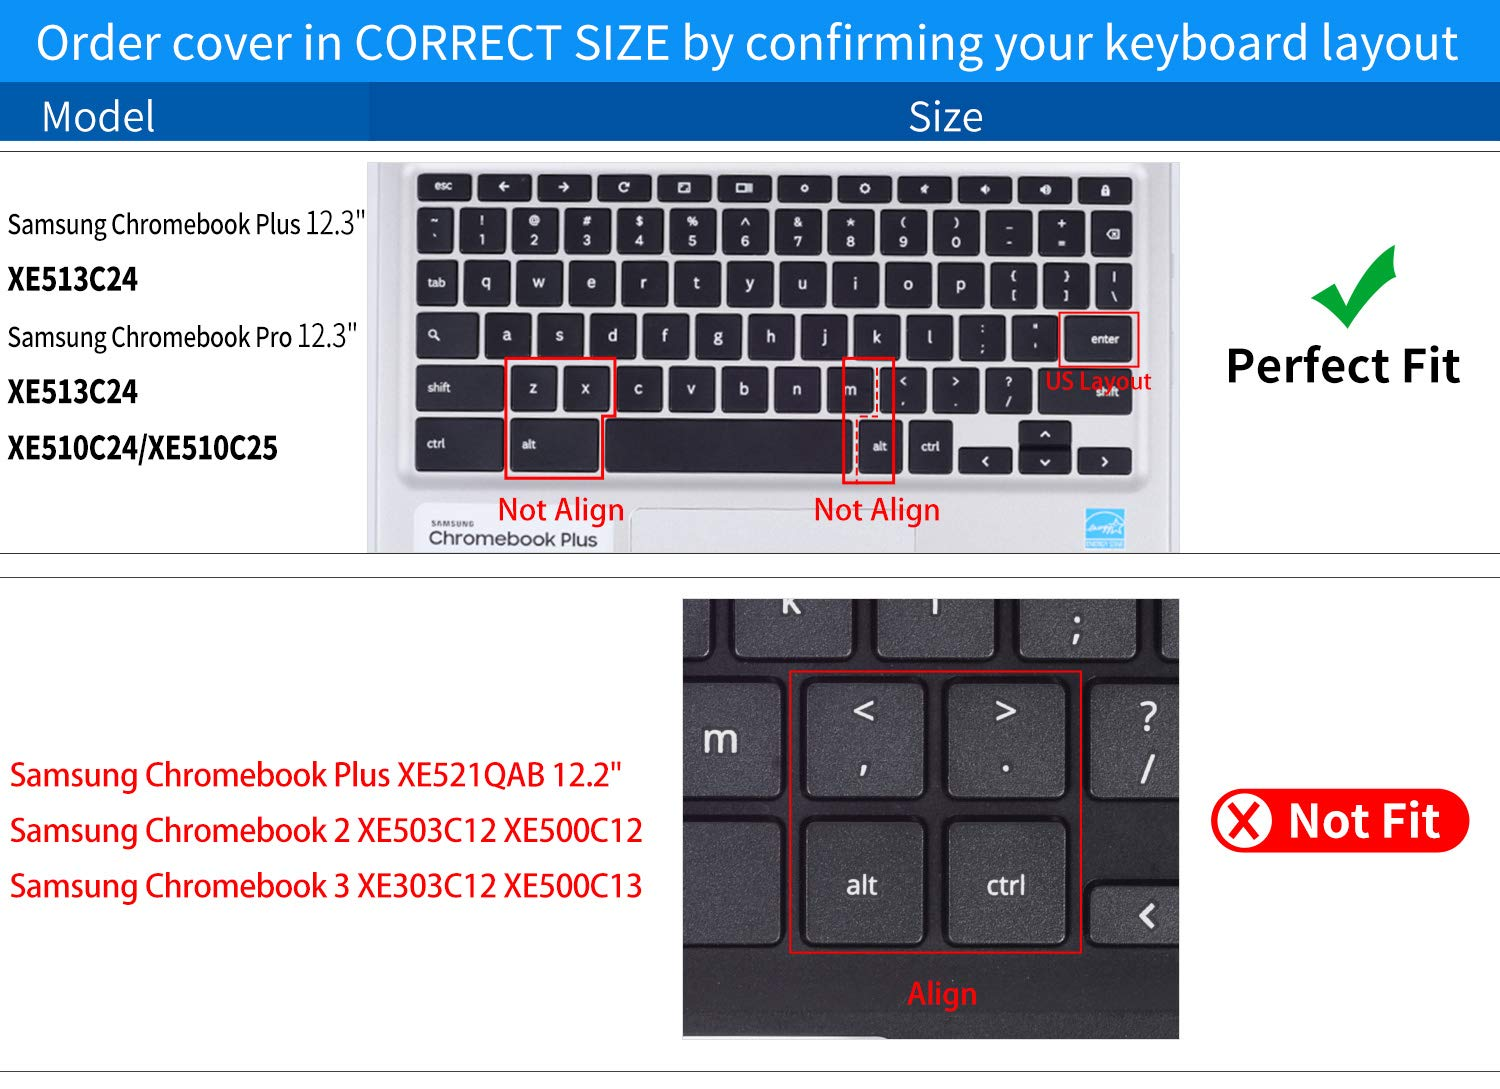 CaseBuy Premium Keyboard Protector Cover Compatible Samsung Chromebook Pro 12.3 inch XE510C24 XE510C25 XE513C24 / Samsung Chromebook Plus 12.3 inch XE513C24 Soft-Touch Protective Skin, Purple